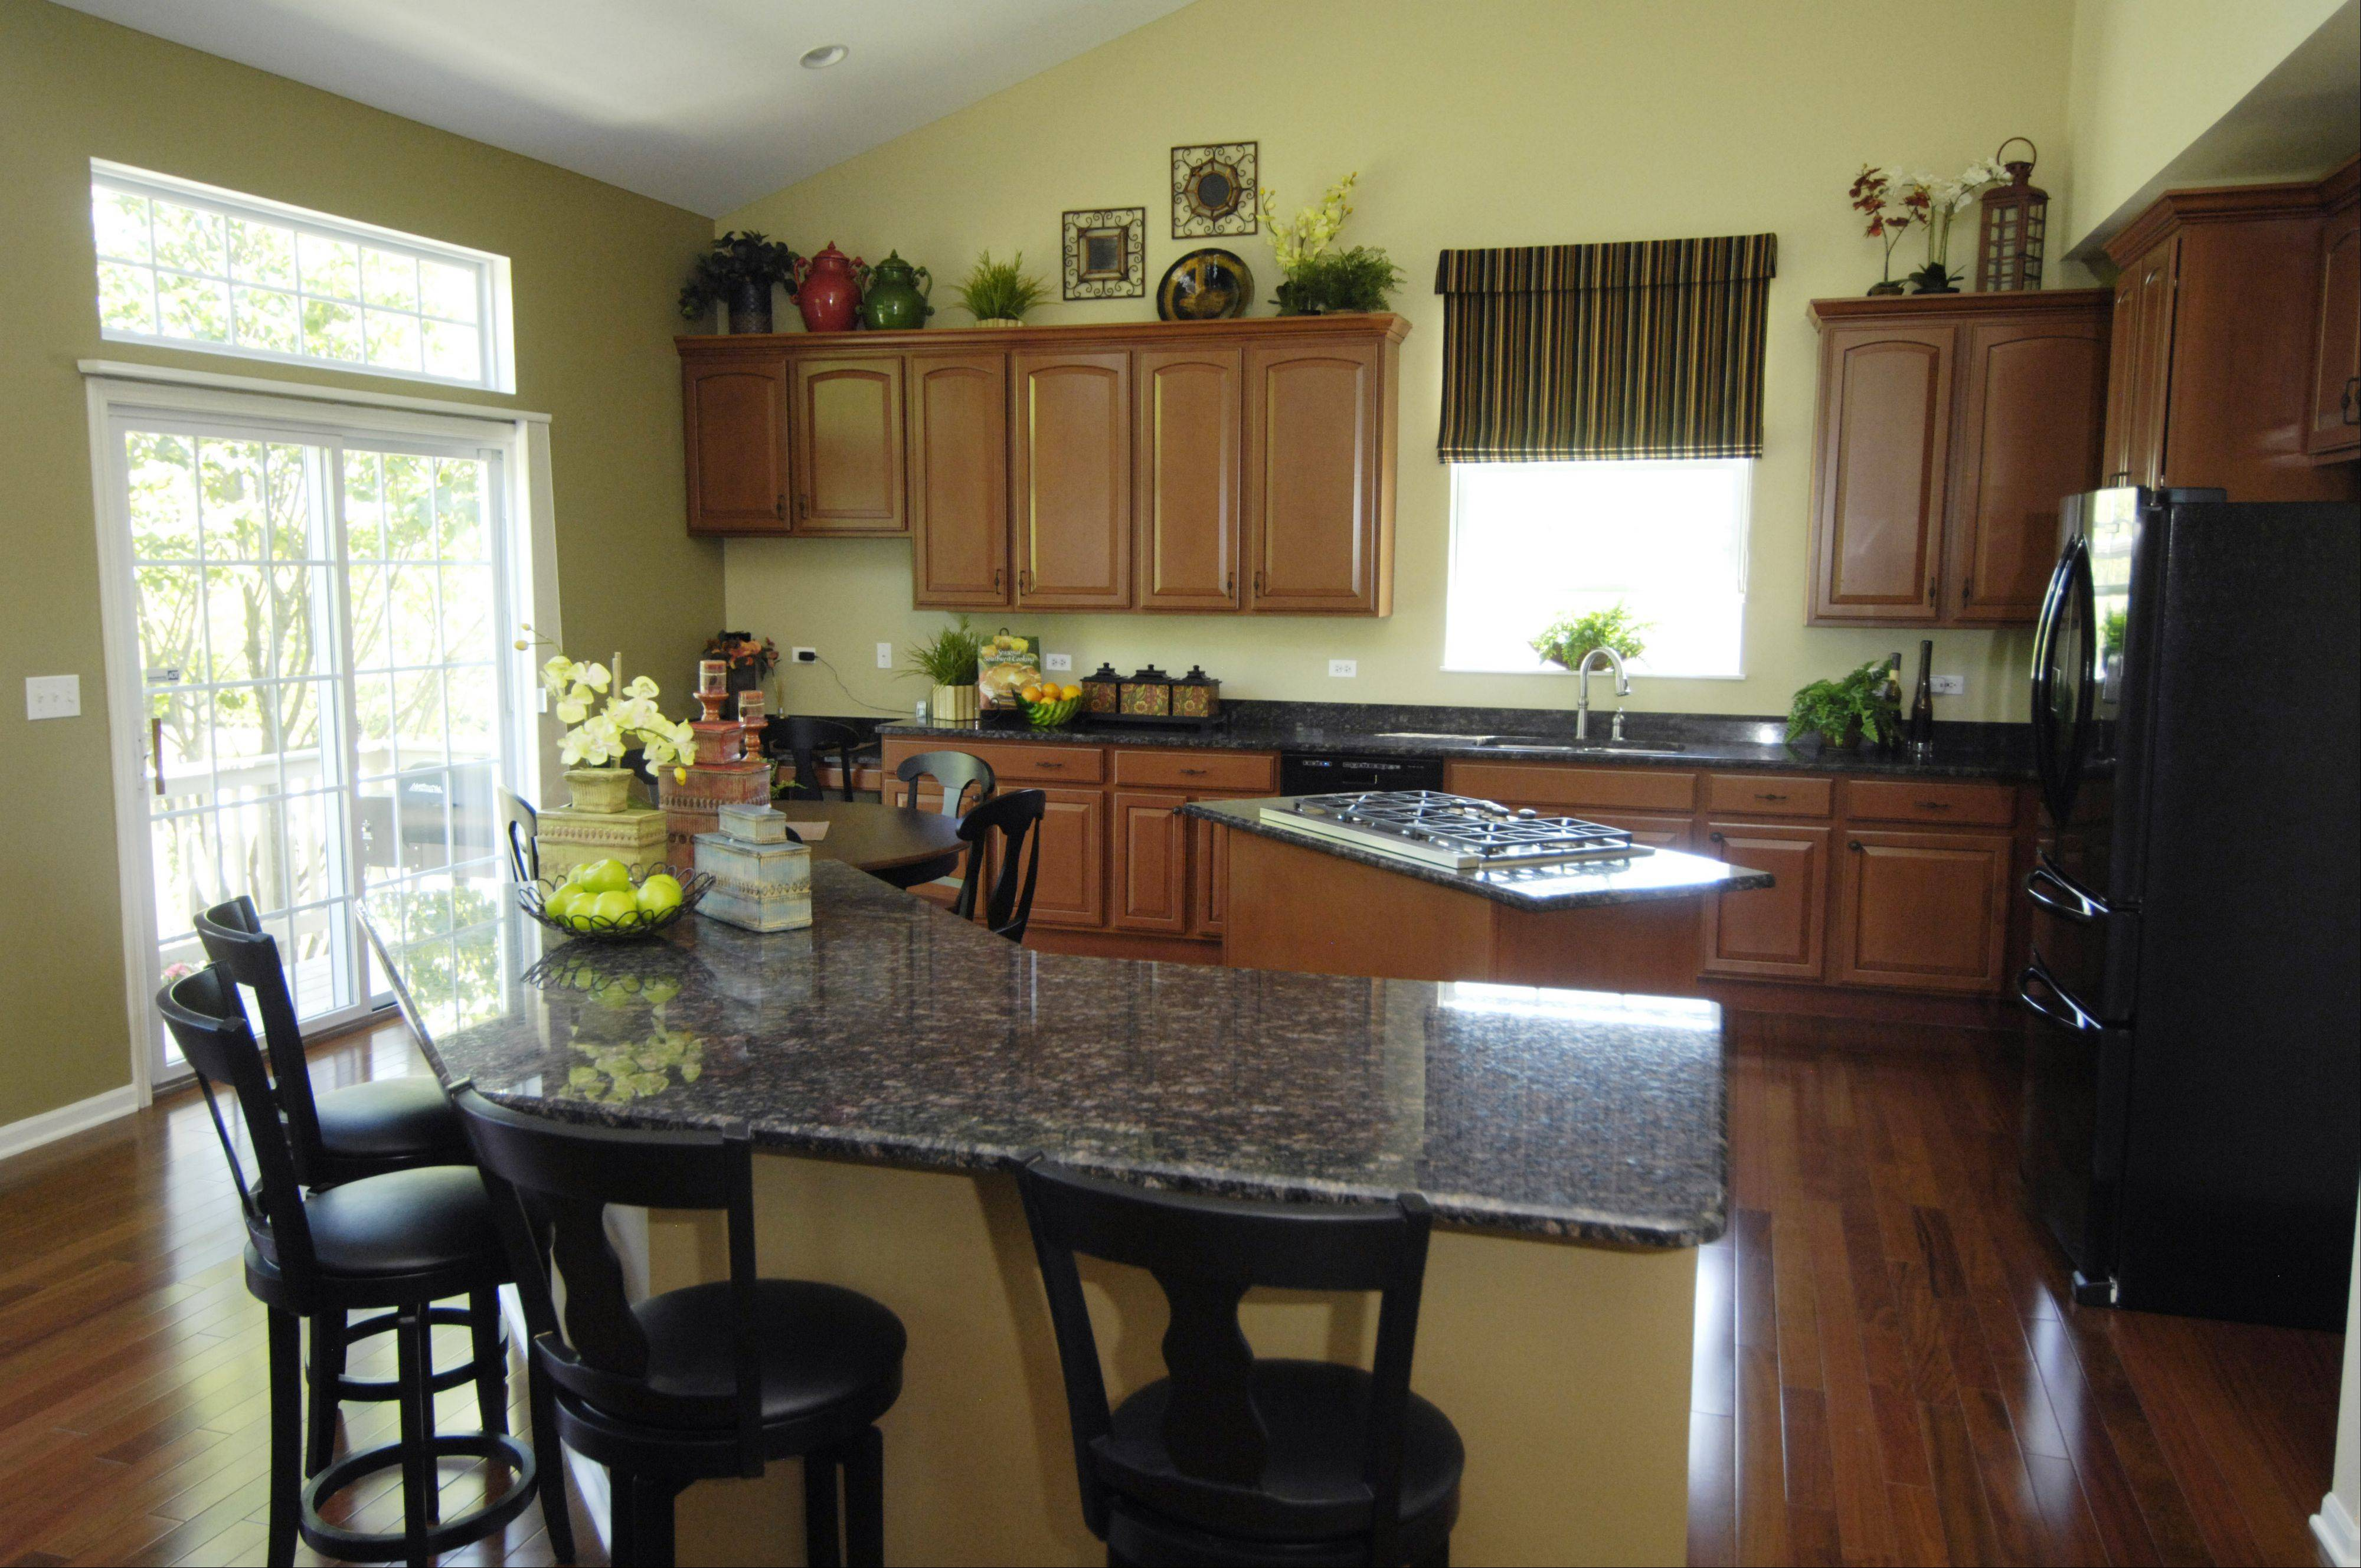 The granite, flooring and furniture is new, but the cabinets were refinished from a light pickled effect with pink tones.